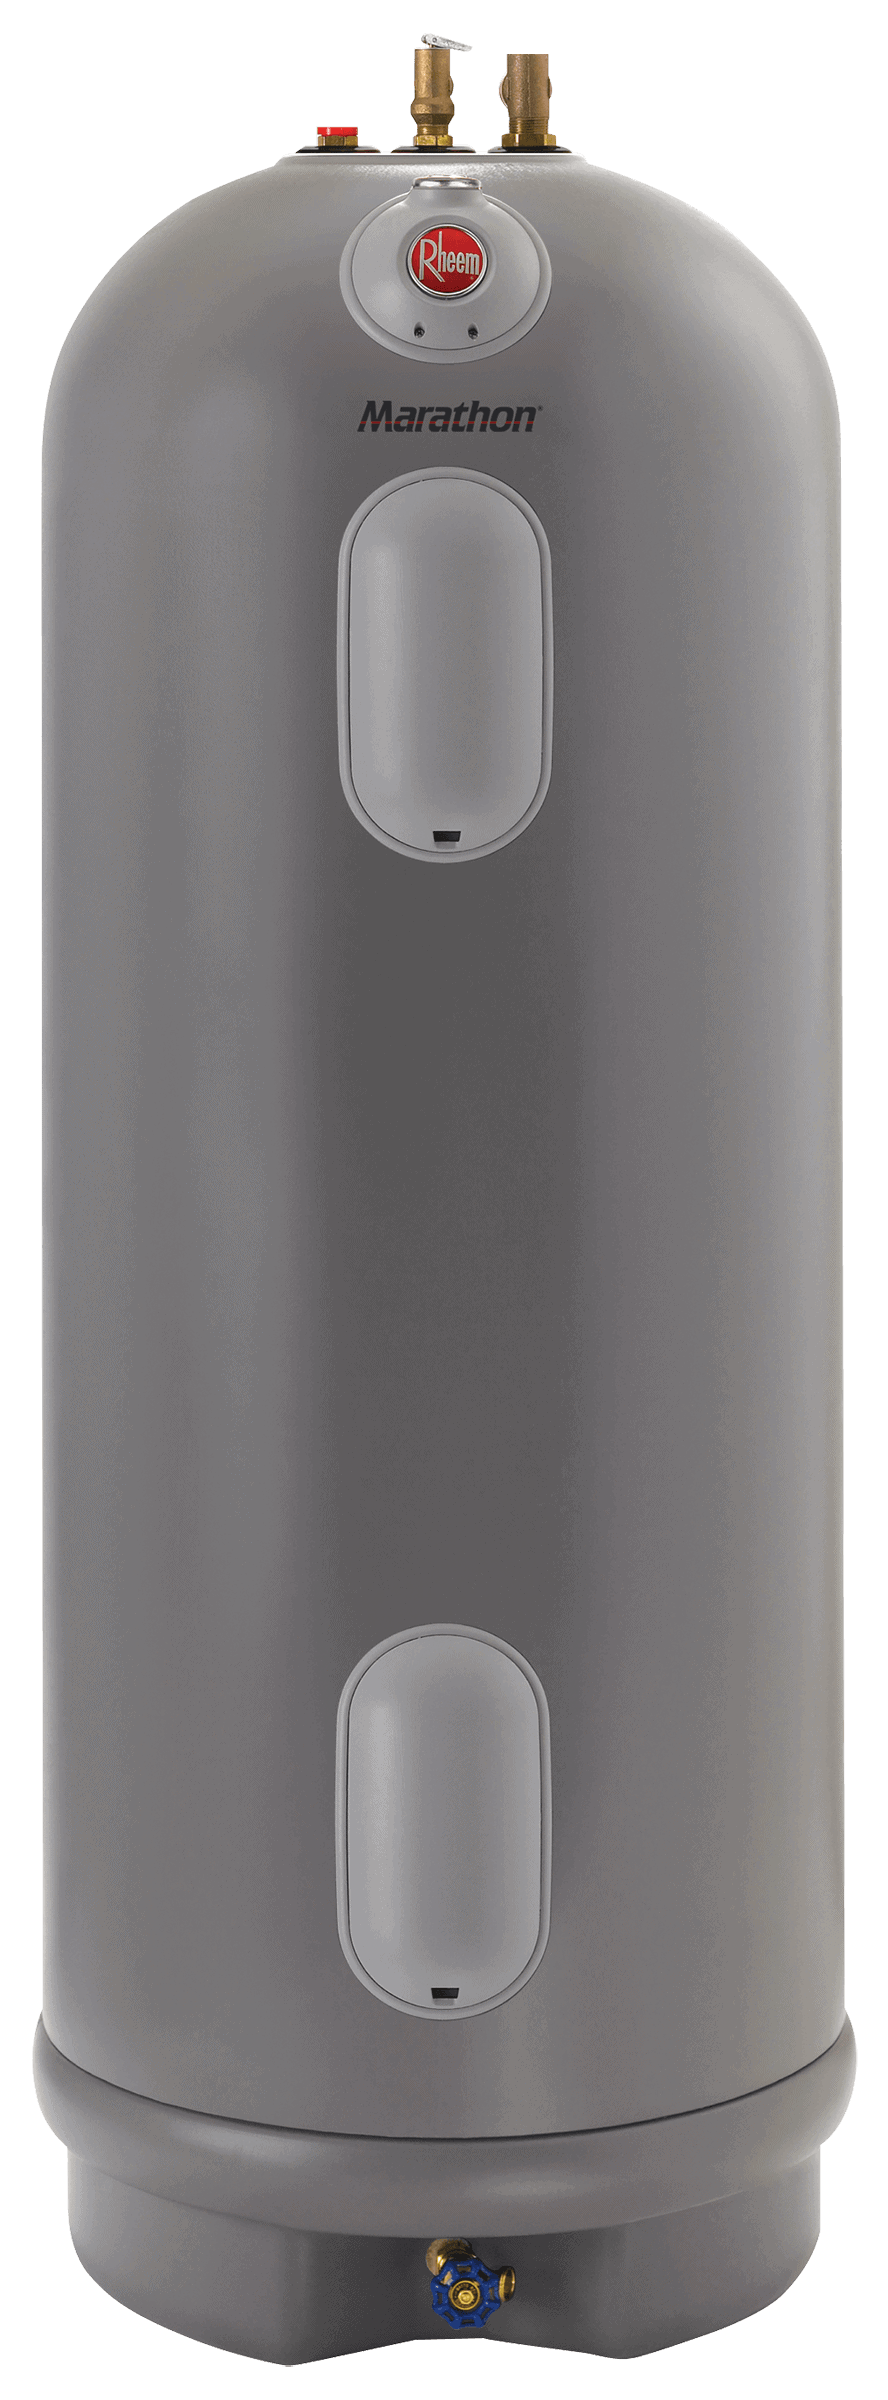 weu0027re fans of rheem water heaters in general and after researching the best options for nontankless water heaters we felt all the more confident going